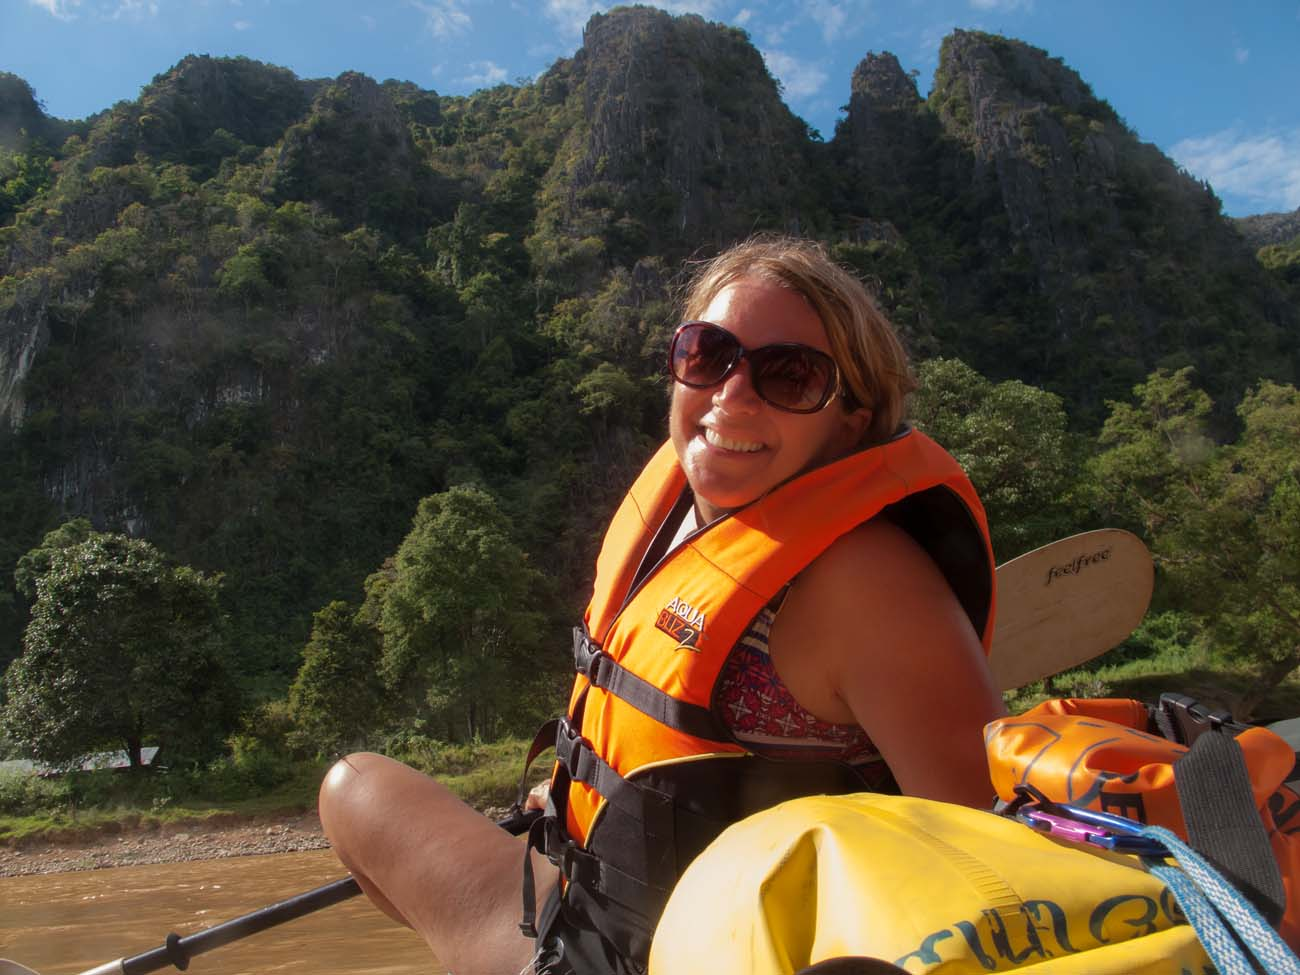 Kayaking on the Nam Song River